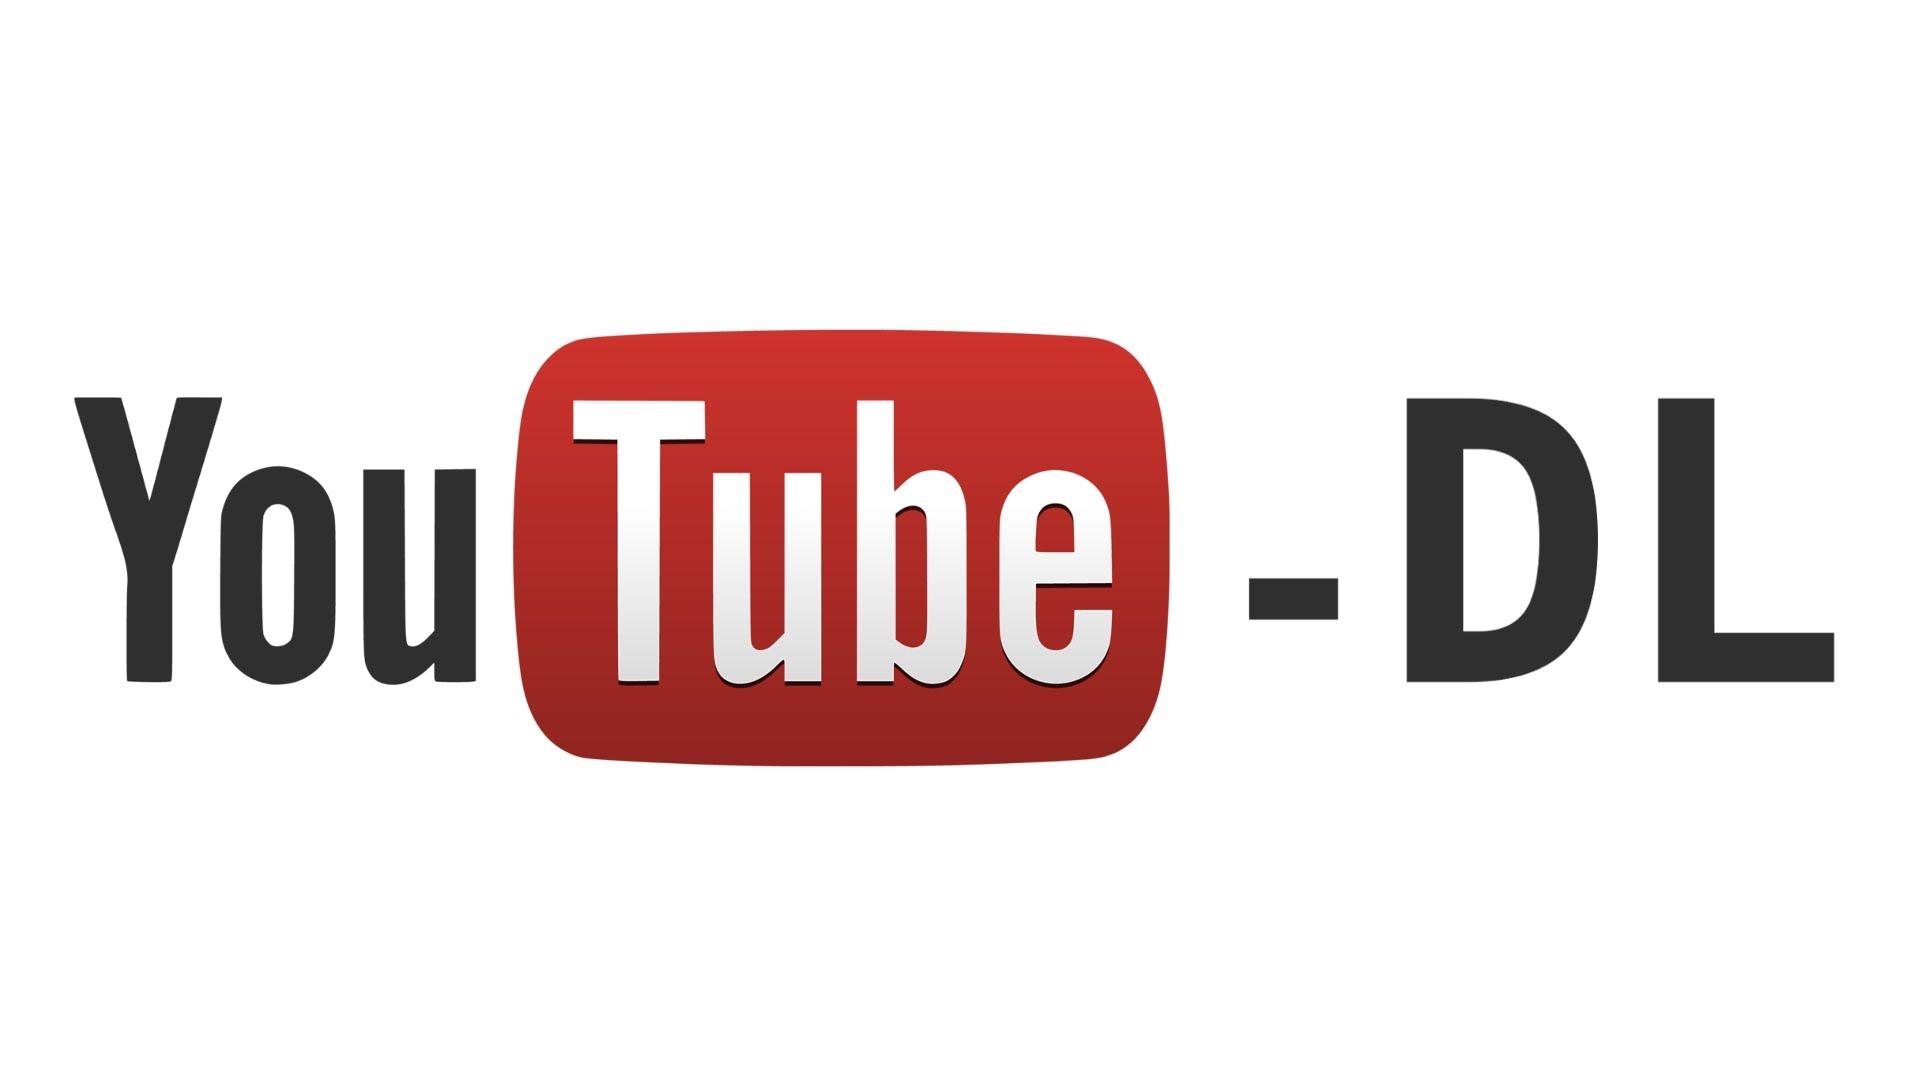 How to install and use youtube-dl on Ubuntu 15.10 and Mint 17.x Linux